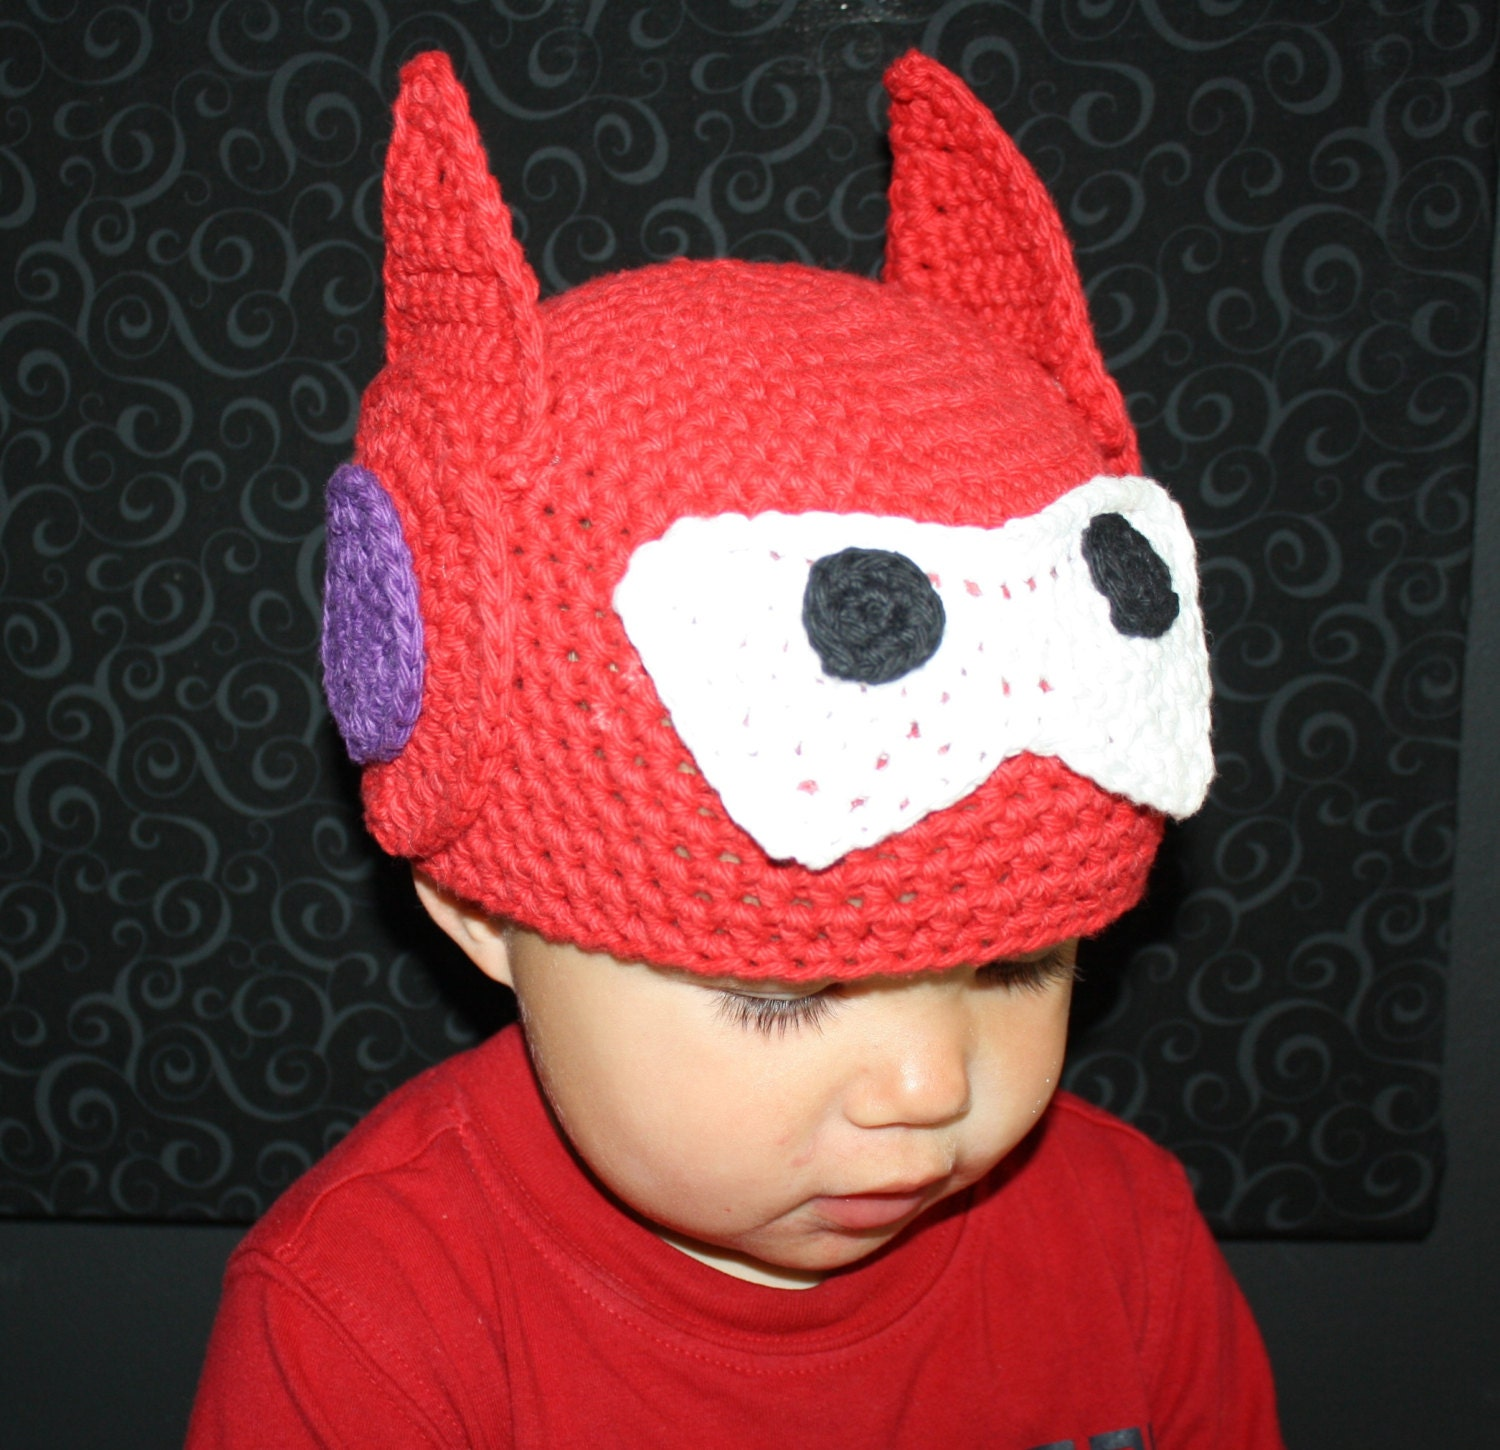 Big hero 6 baymax hat easy crochet pdf pattern infant zoom bankloansurffo Gallery